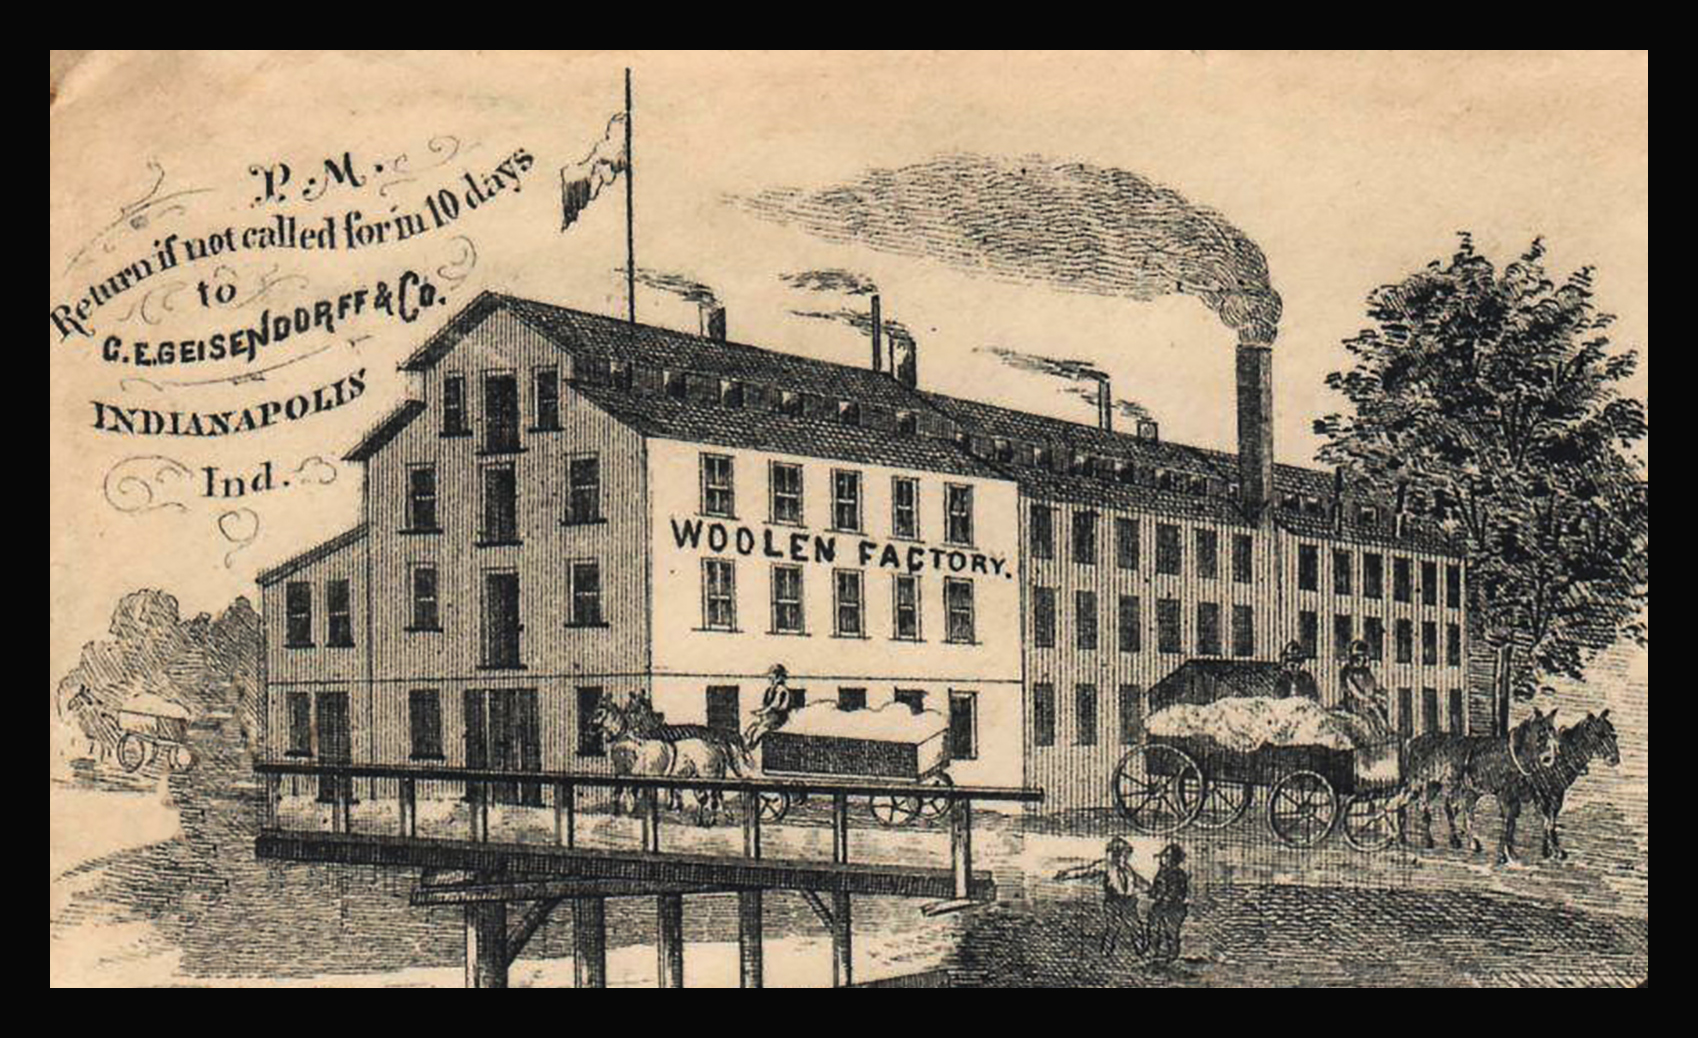 Sunday Adverts: Geisendorff… Just Milling Around